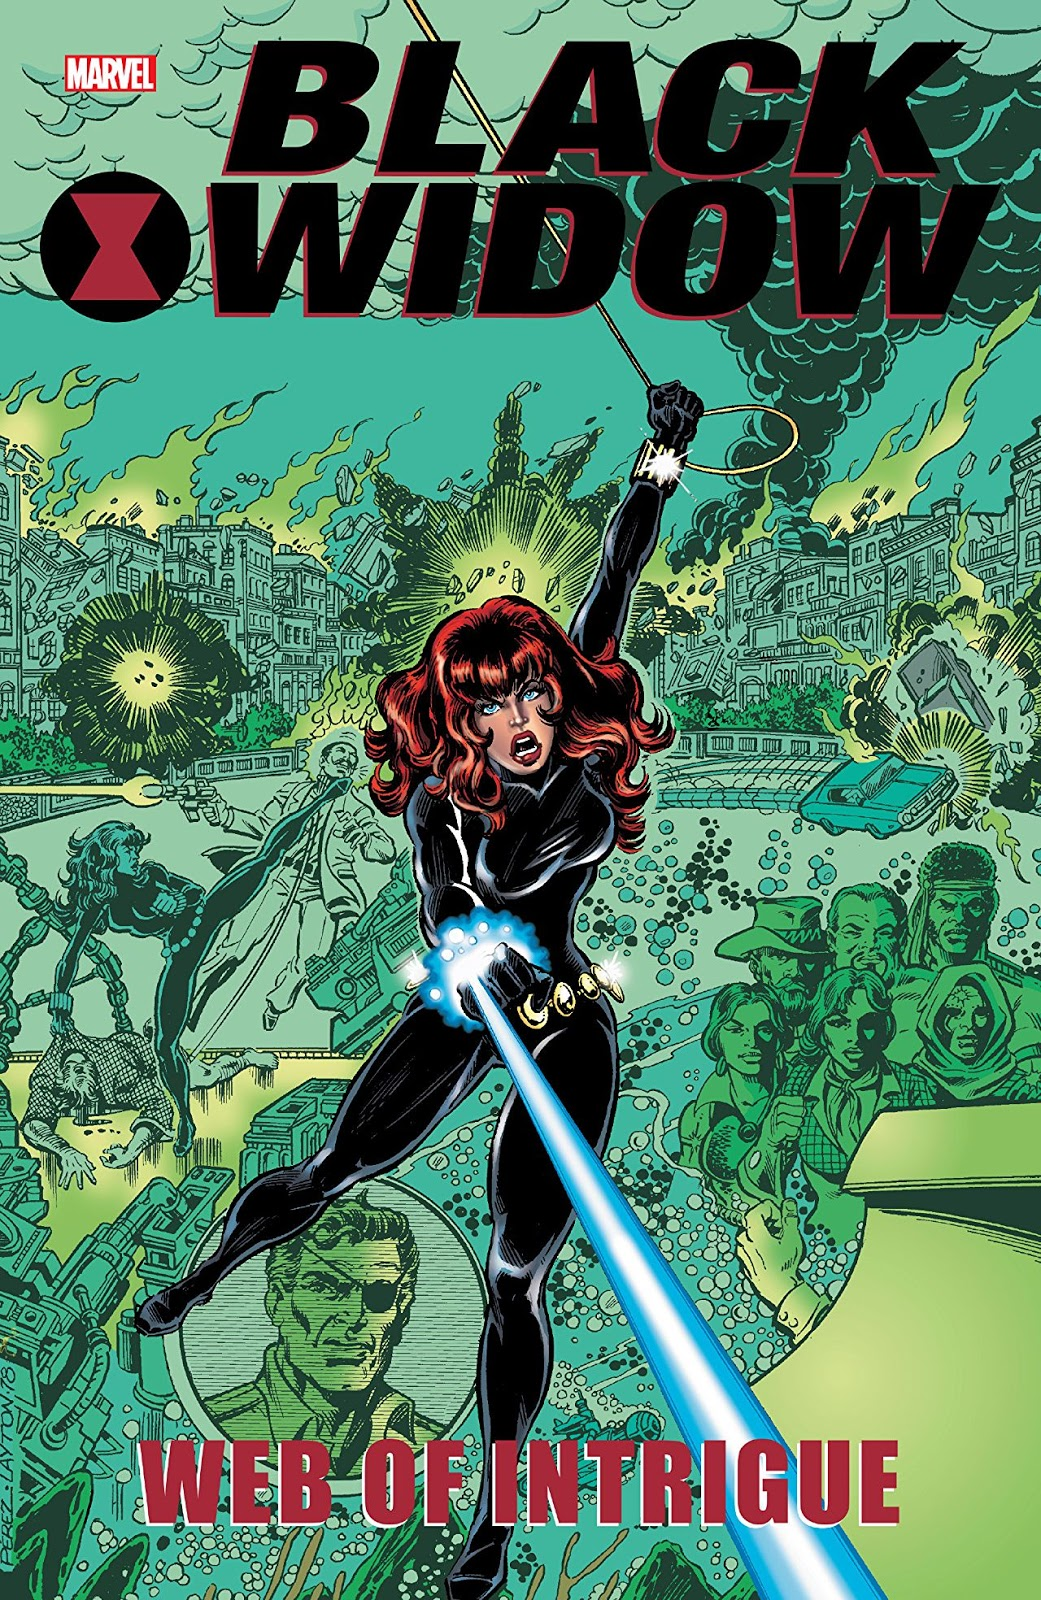 Review Black Widow Web of Intrigue Ralph Macchio George Perez George Pérez Gerry Conway Bob Layton Luke McDonnell Paul Gulacy George Freeman Natasha Romanoff Natasha Romanova Marvel Comics cover trade paperback tpb comic book